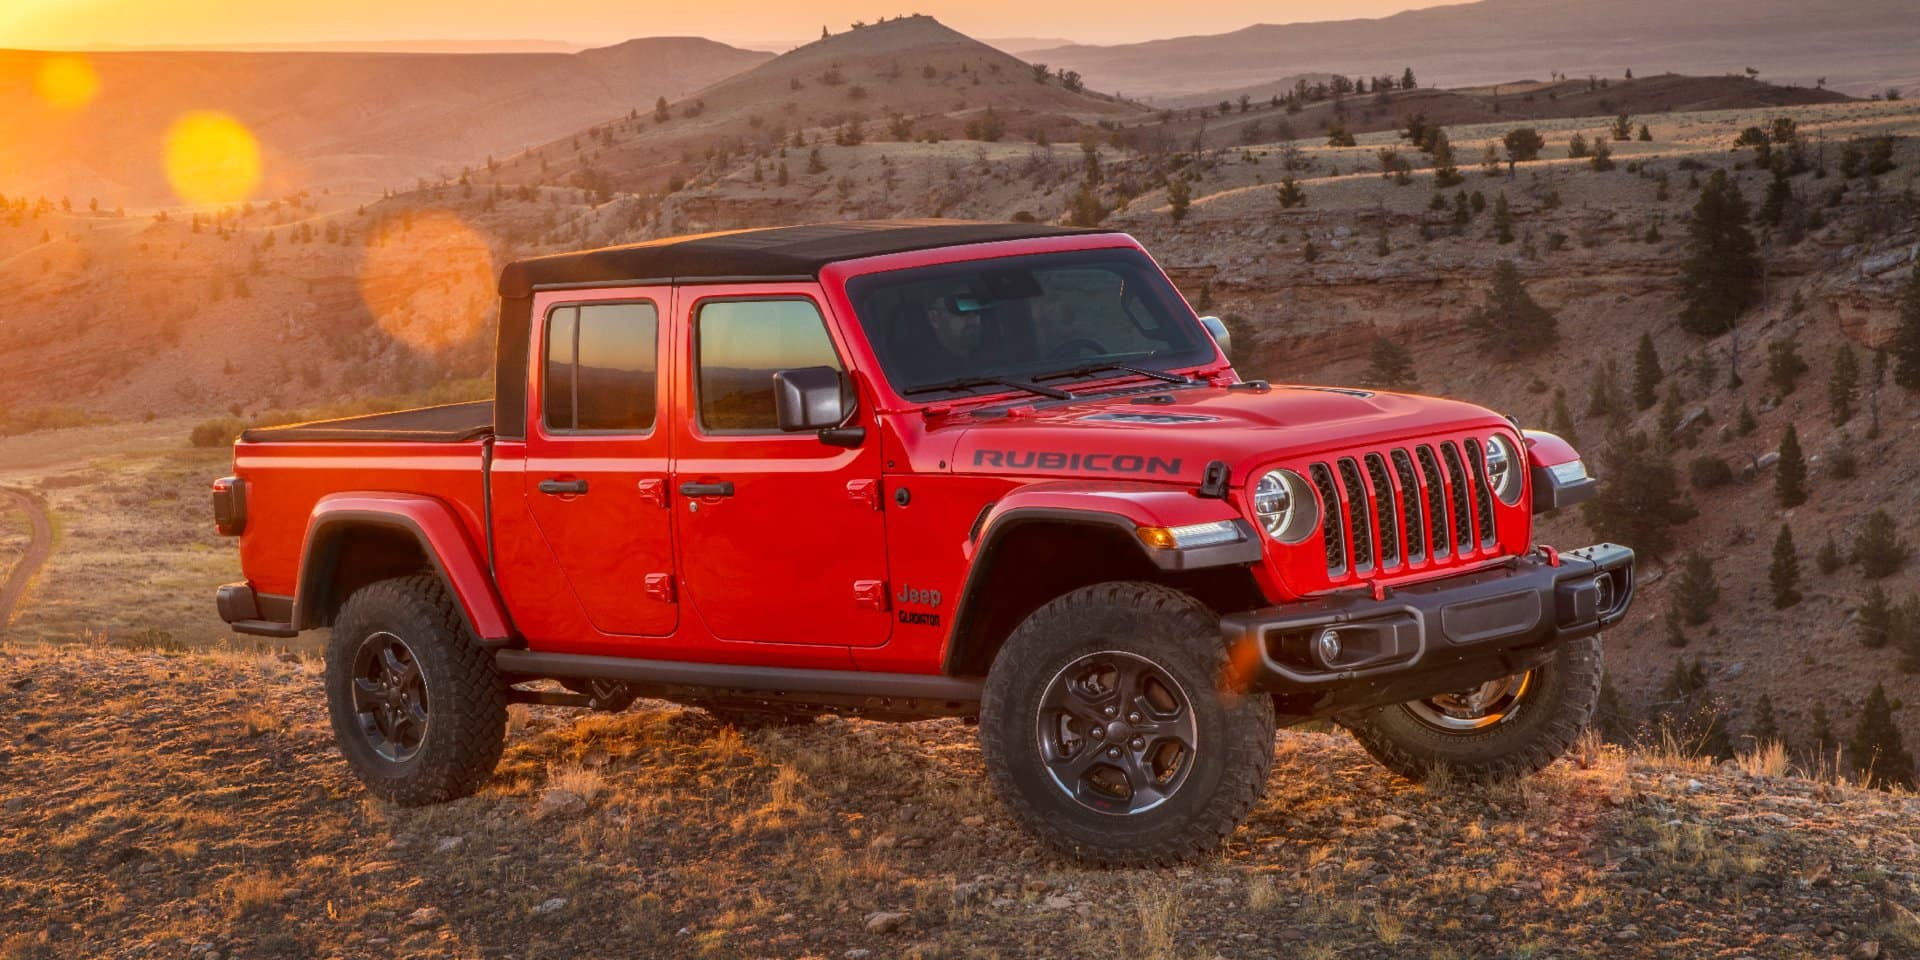 New Jeep Gladiator Is One Step Closer to Having a V6 Diesel